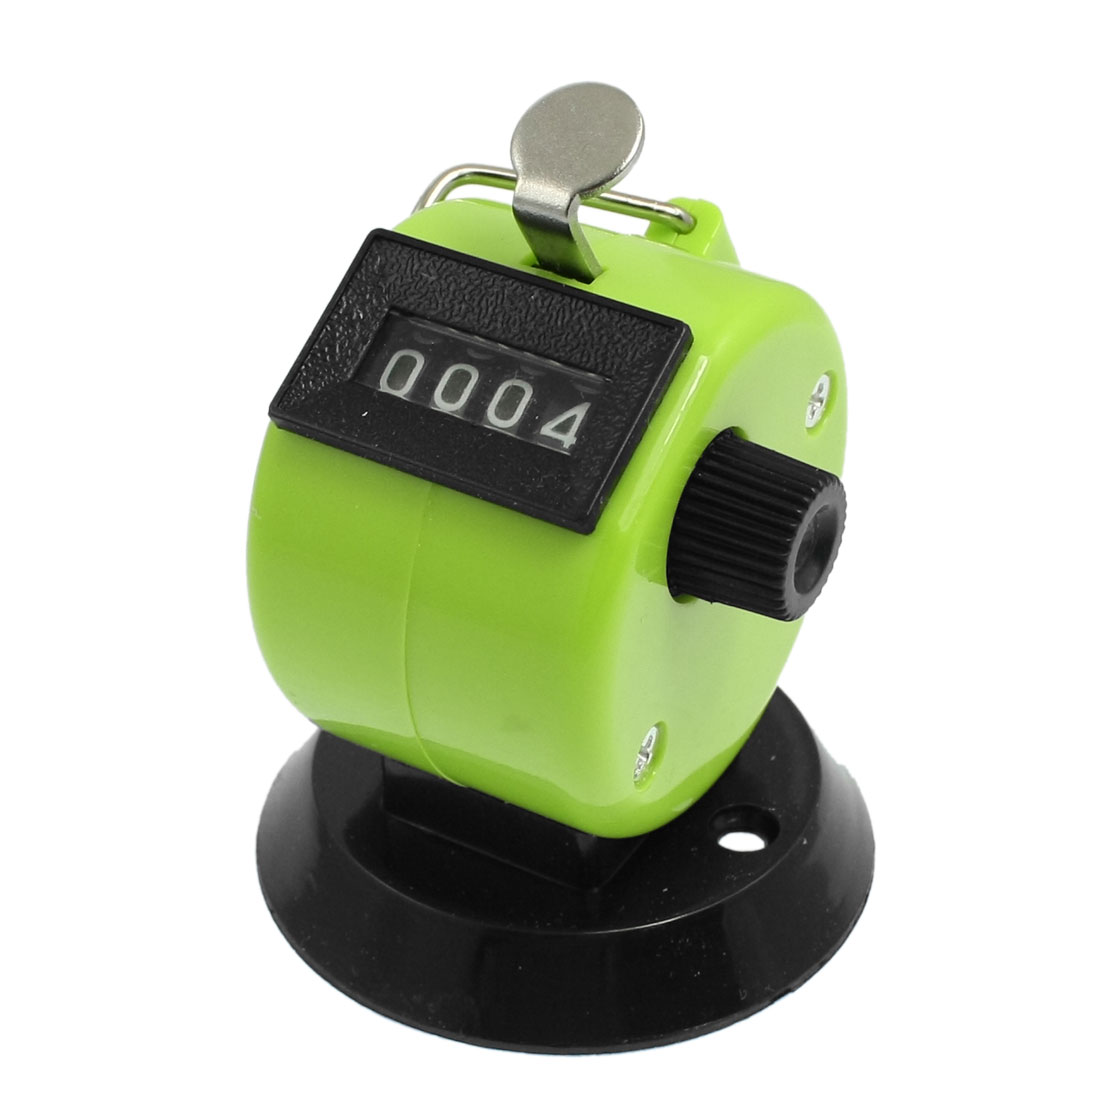 Round Base Resettable Hand Clicker Golf 4 Numbers Tally Counter Green Black